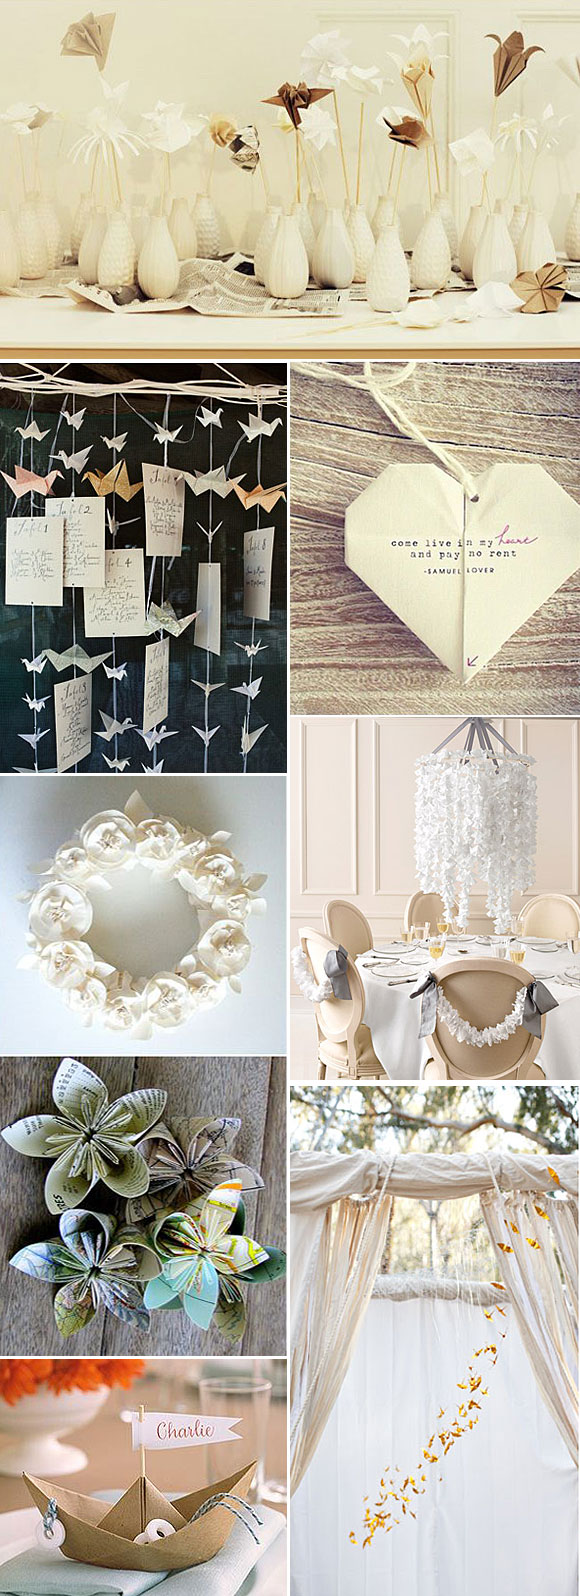 Decoracion origami bodas for Budas decoracion interior